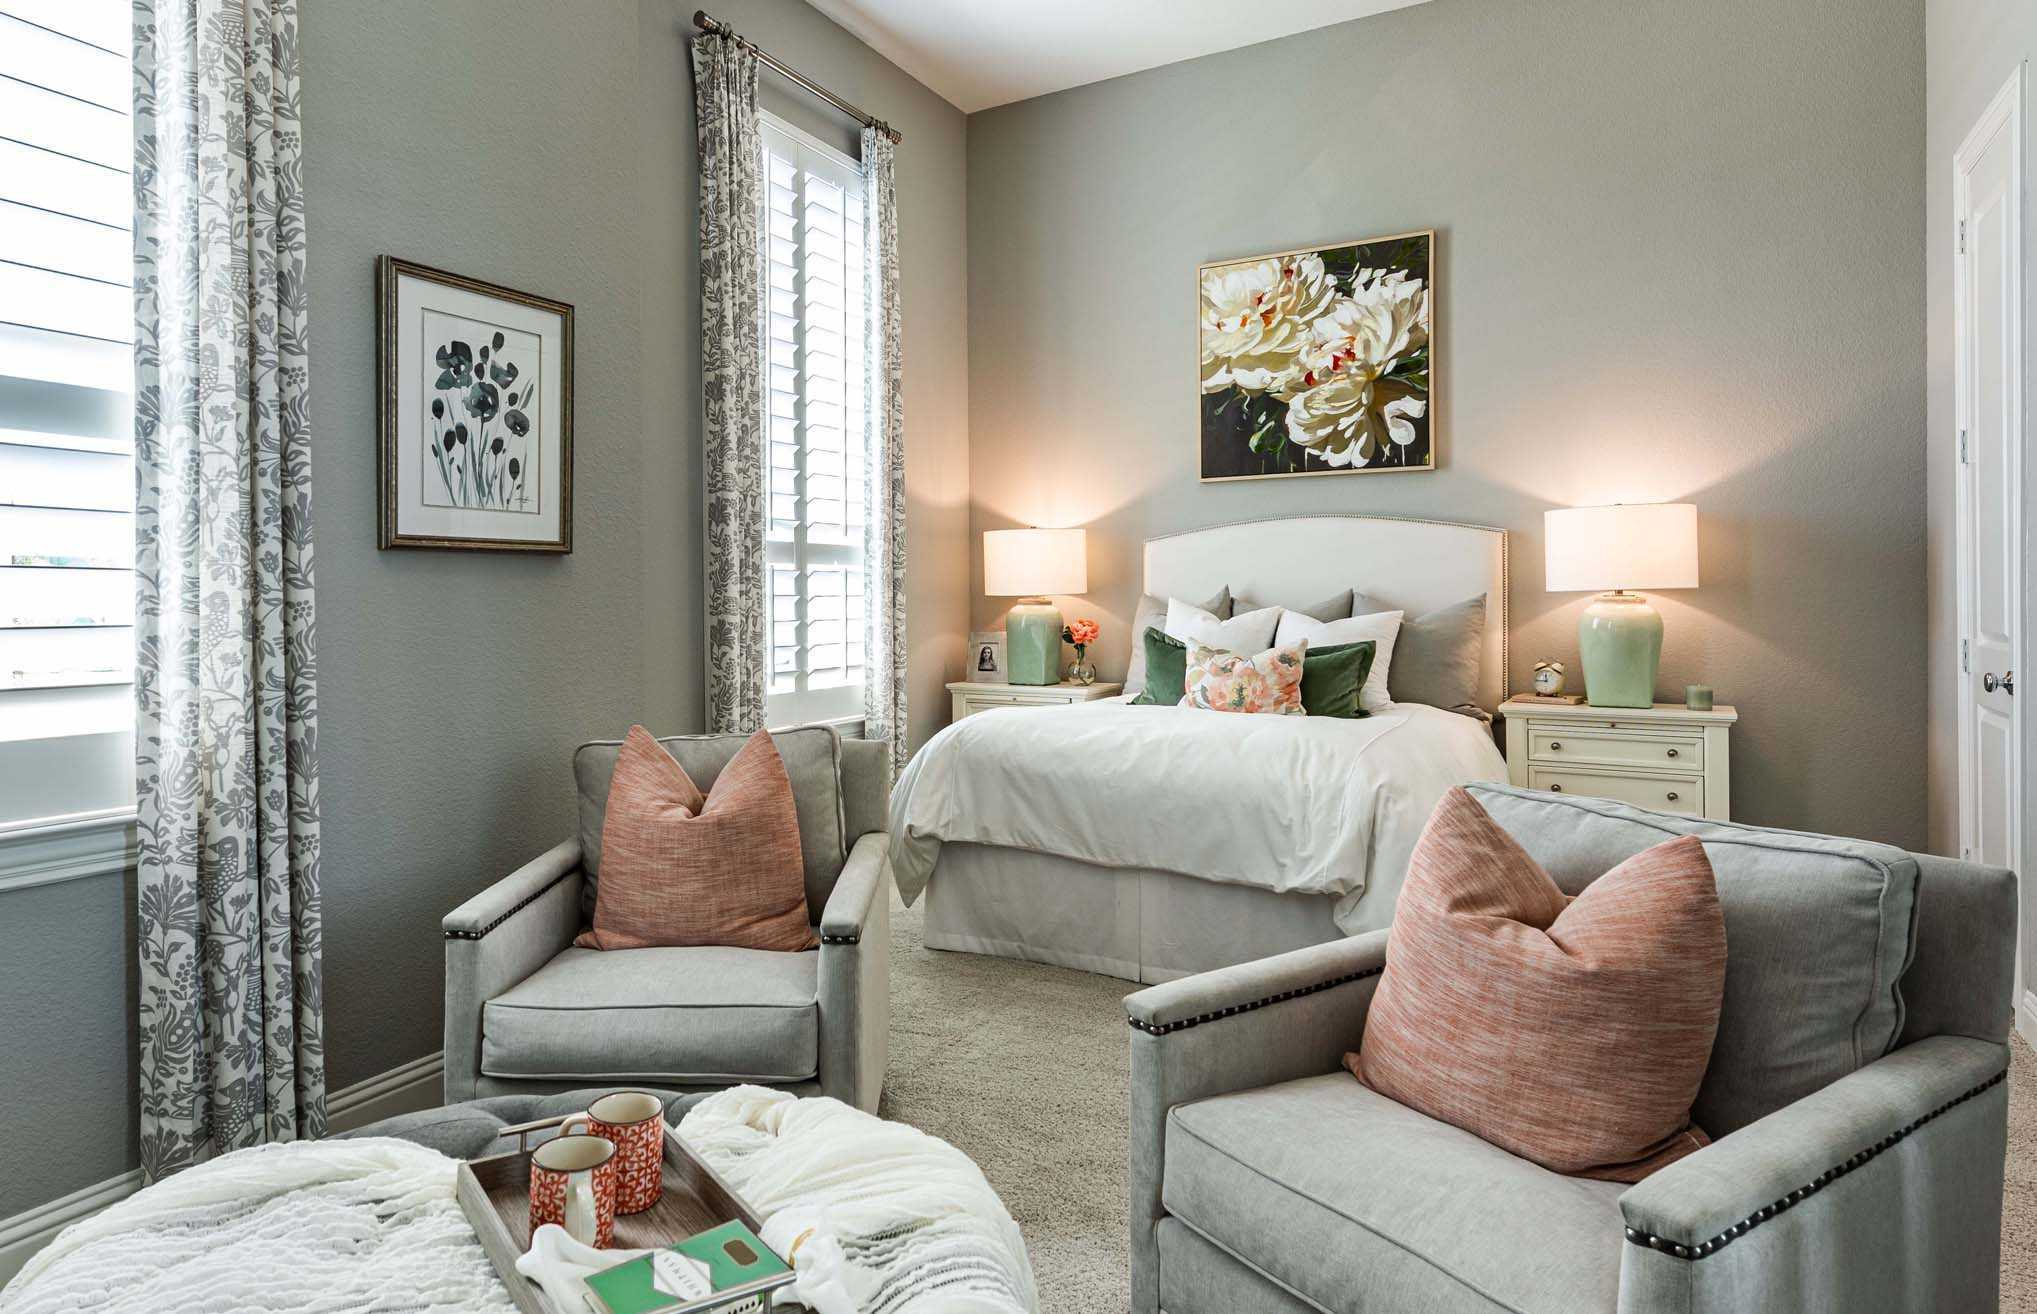 Bedroom featured in the Plan 274 By Highland Homes in San Antonio, TX